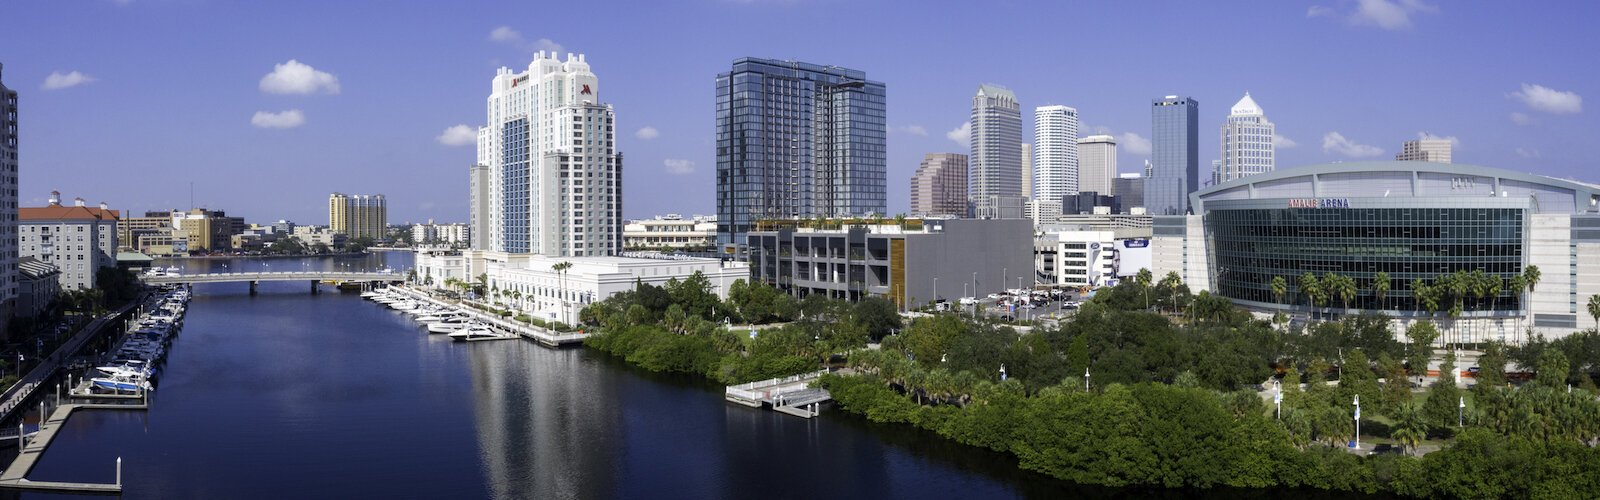 The new JW Marriott Hotel stands out between the Marriott Waterside and Amalie Arena in the Water Street Tampa development.